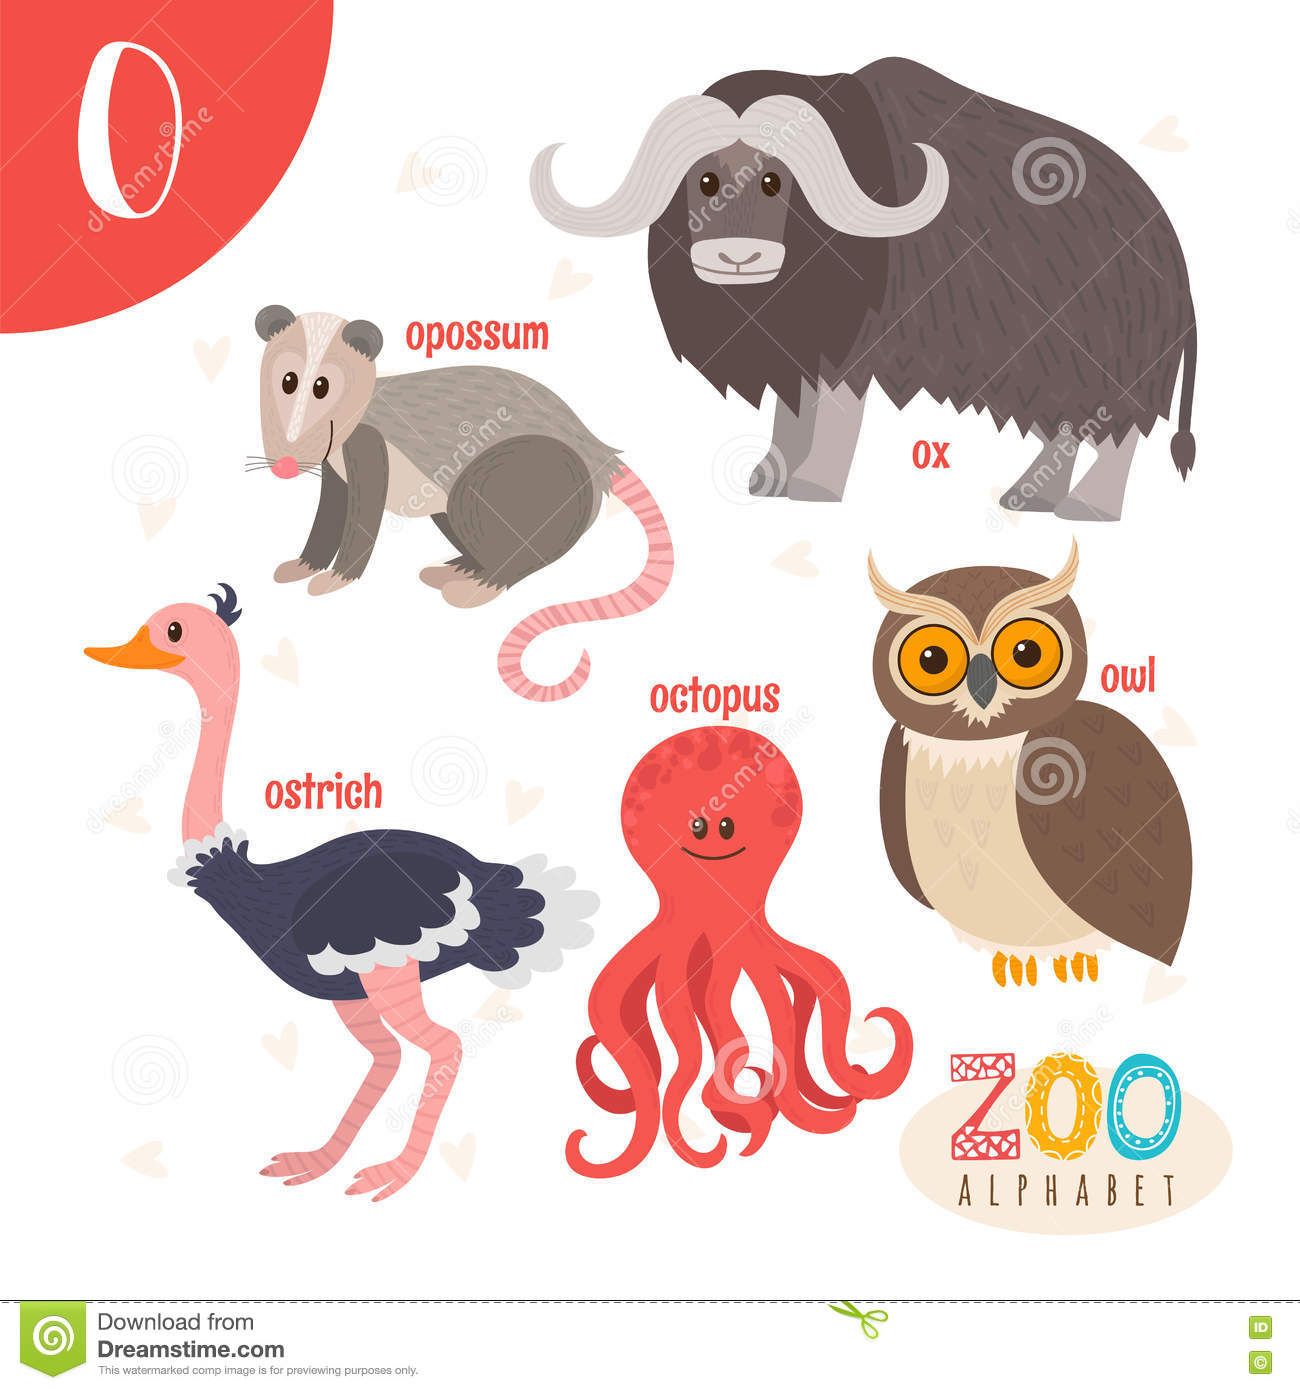 Opossum cartoons illustrations vector stock images for Animals with the letter o in their name